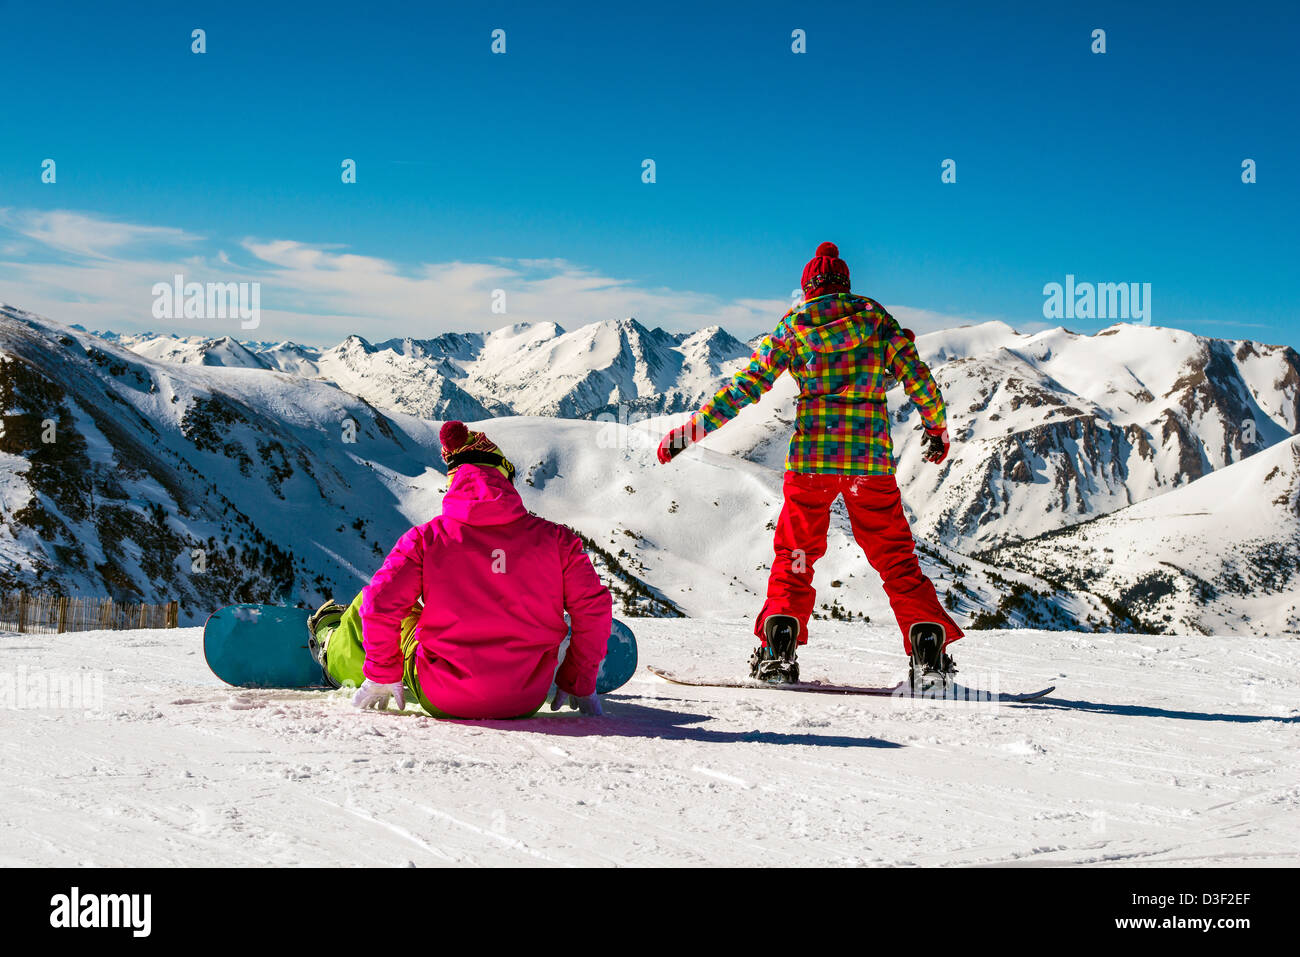 Young snowboarders on El Tarter ski slopes, Grandvalira, Pyrenees, Andorra - Stock Image